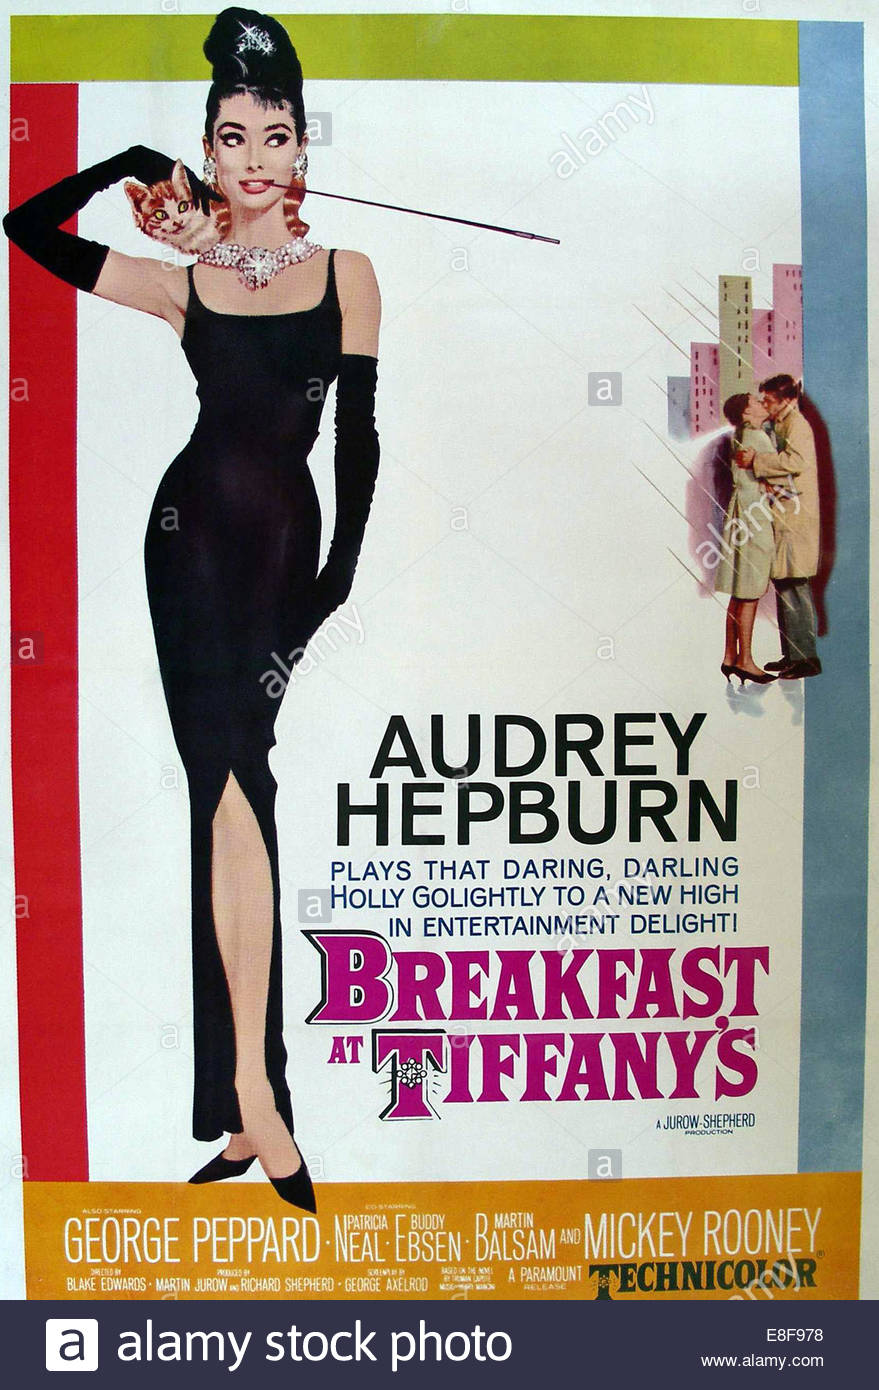 Breakfast at Tiffany's (film) de l'affiche. Artiste : Anonyme Photo Stock